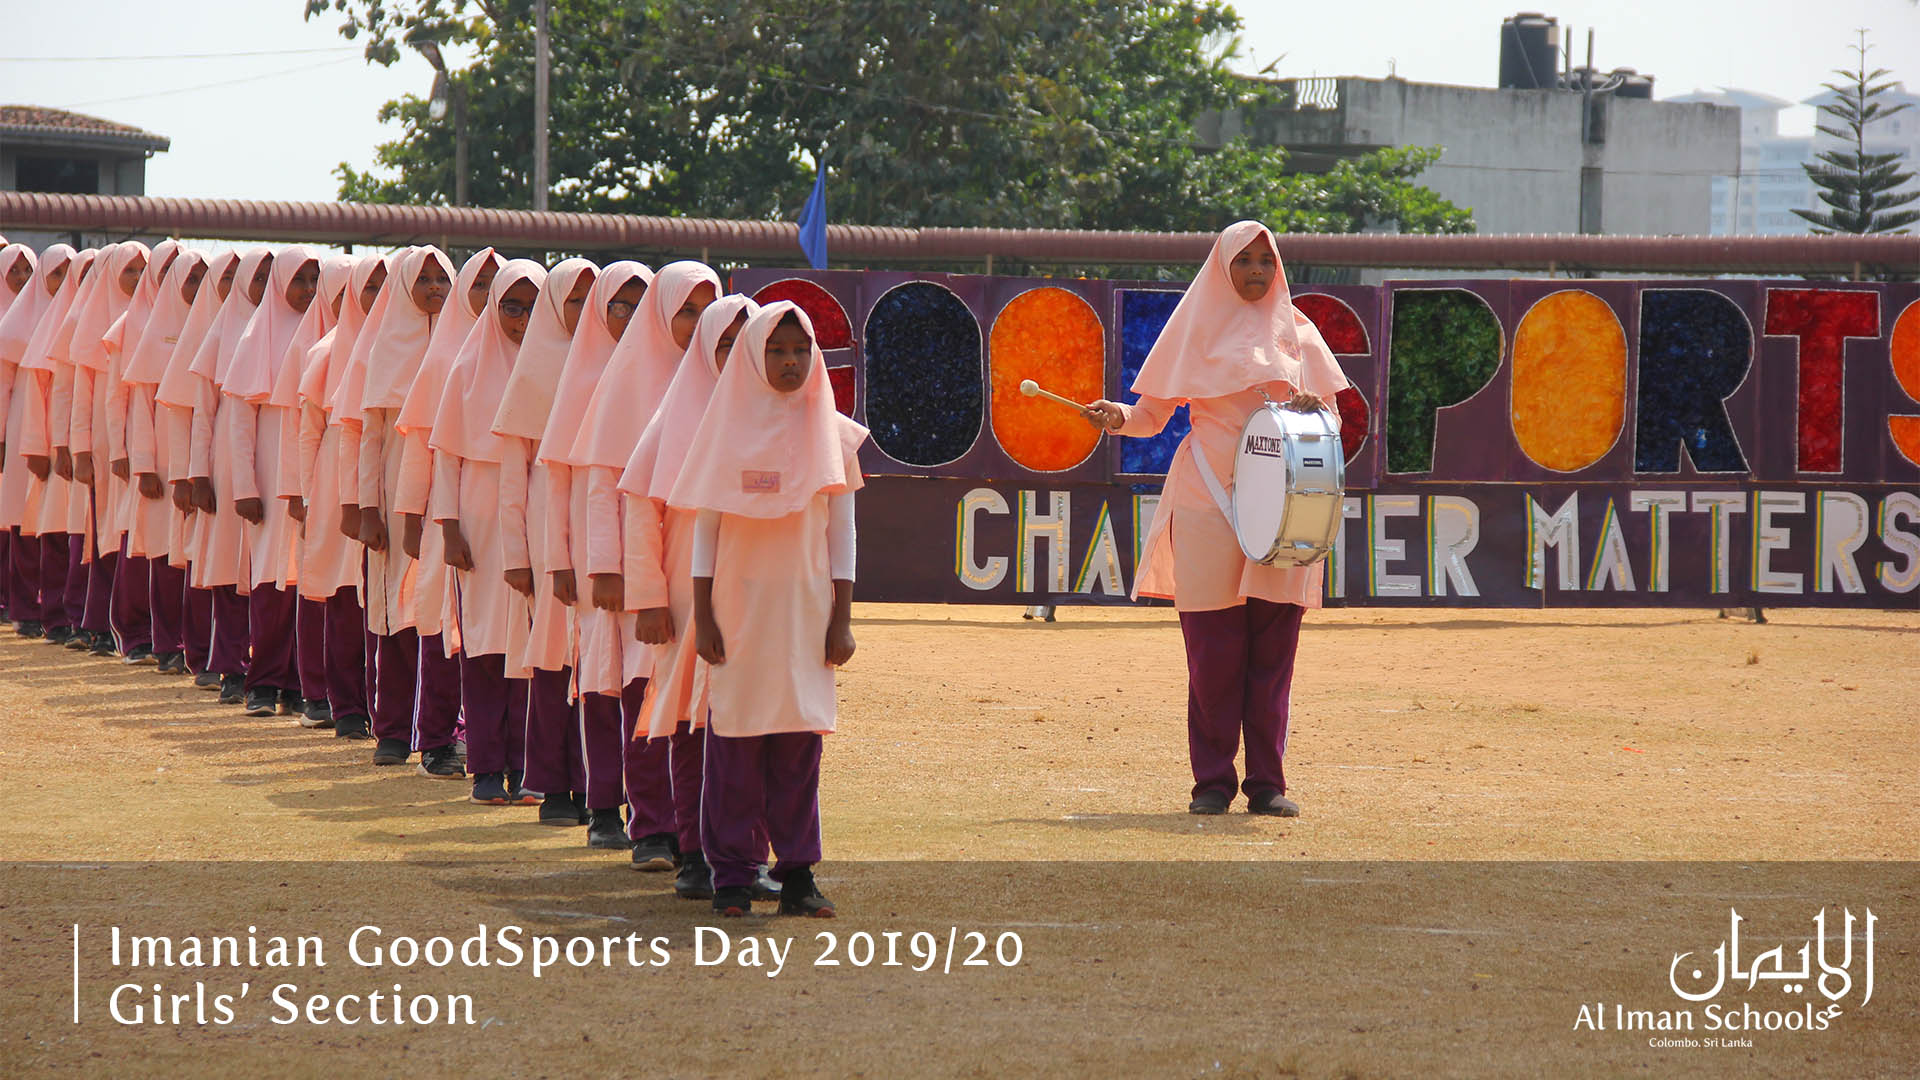 Images from the Girls' Section Sportsmeet 2019/20